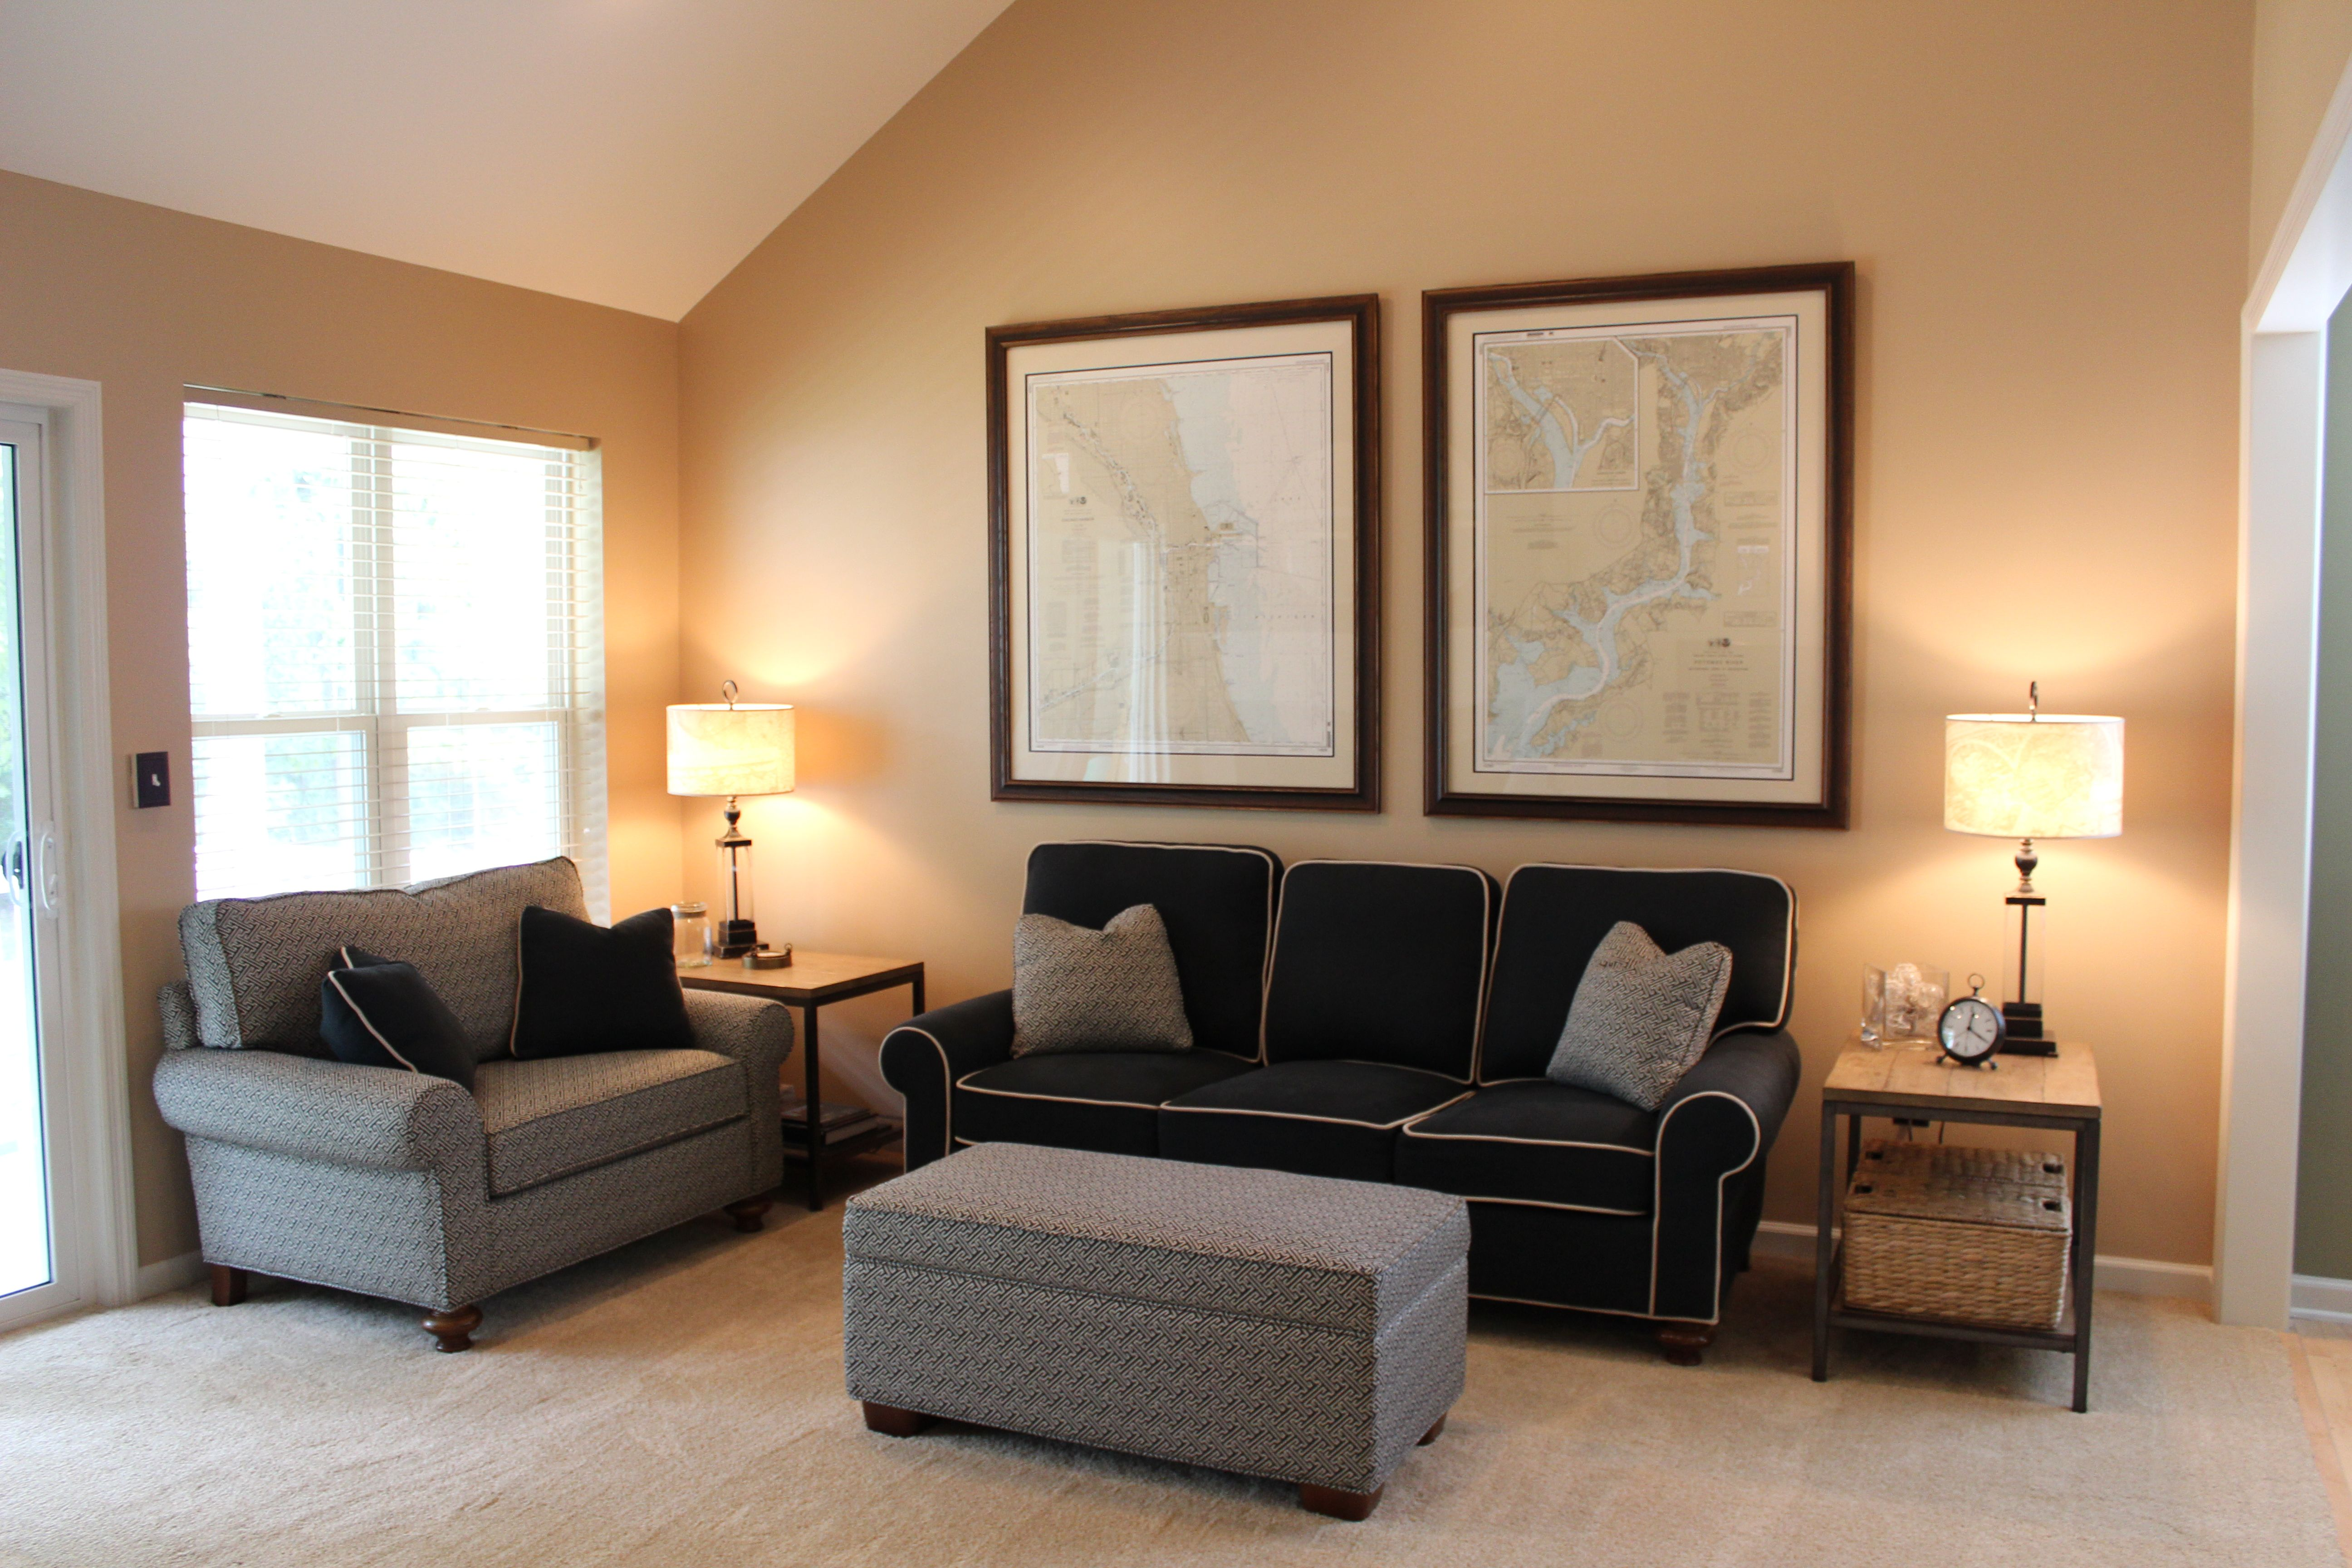 paint colors for living room http arrishomes com 7408 on paint for living room walls id=43654